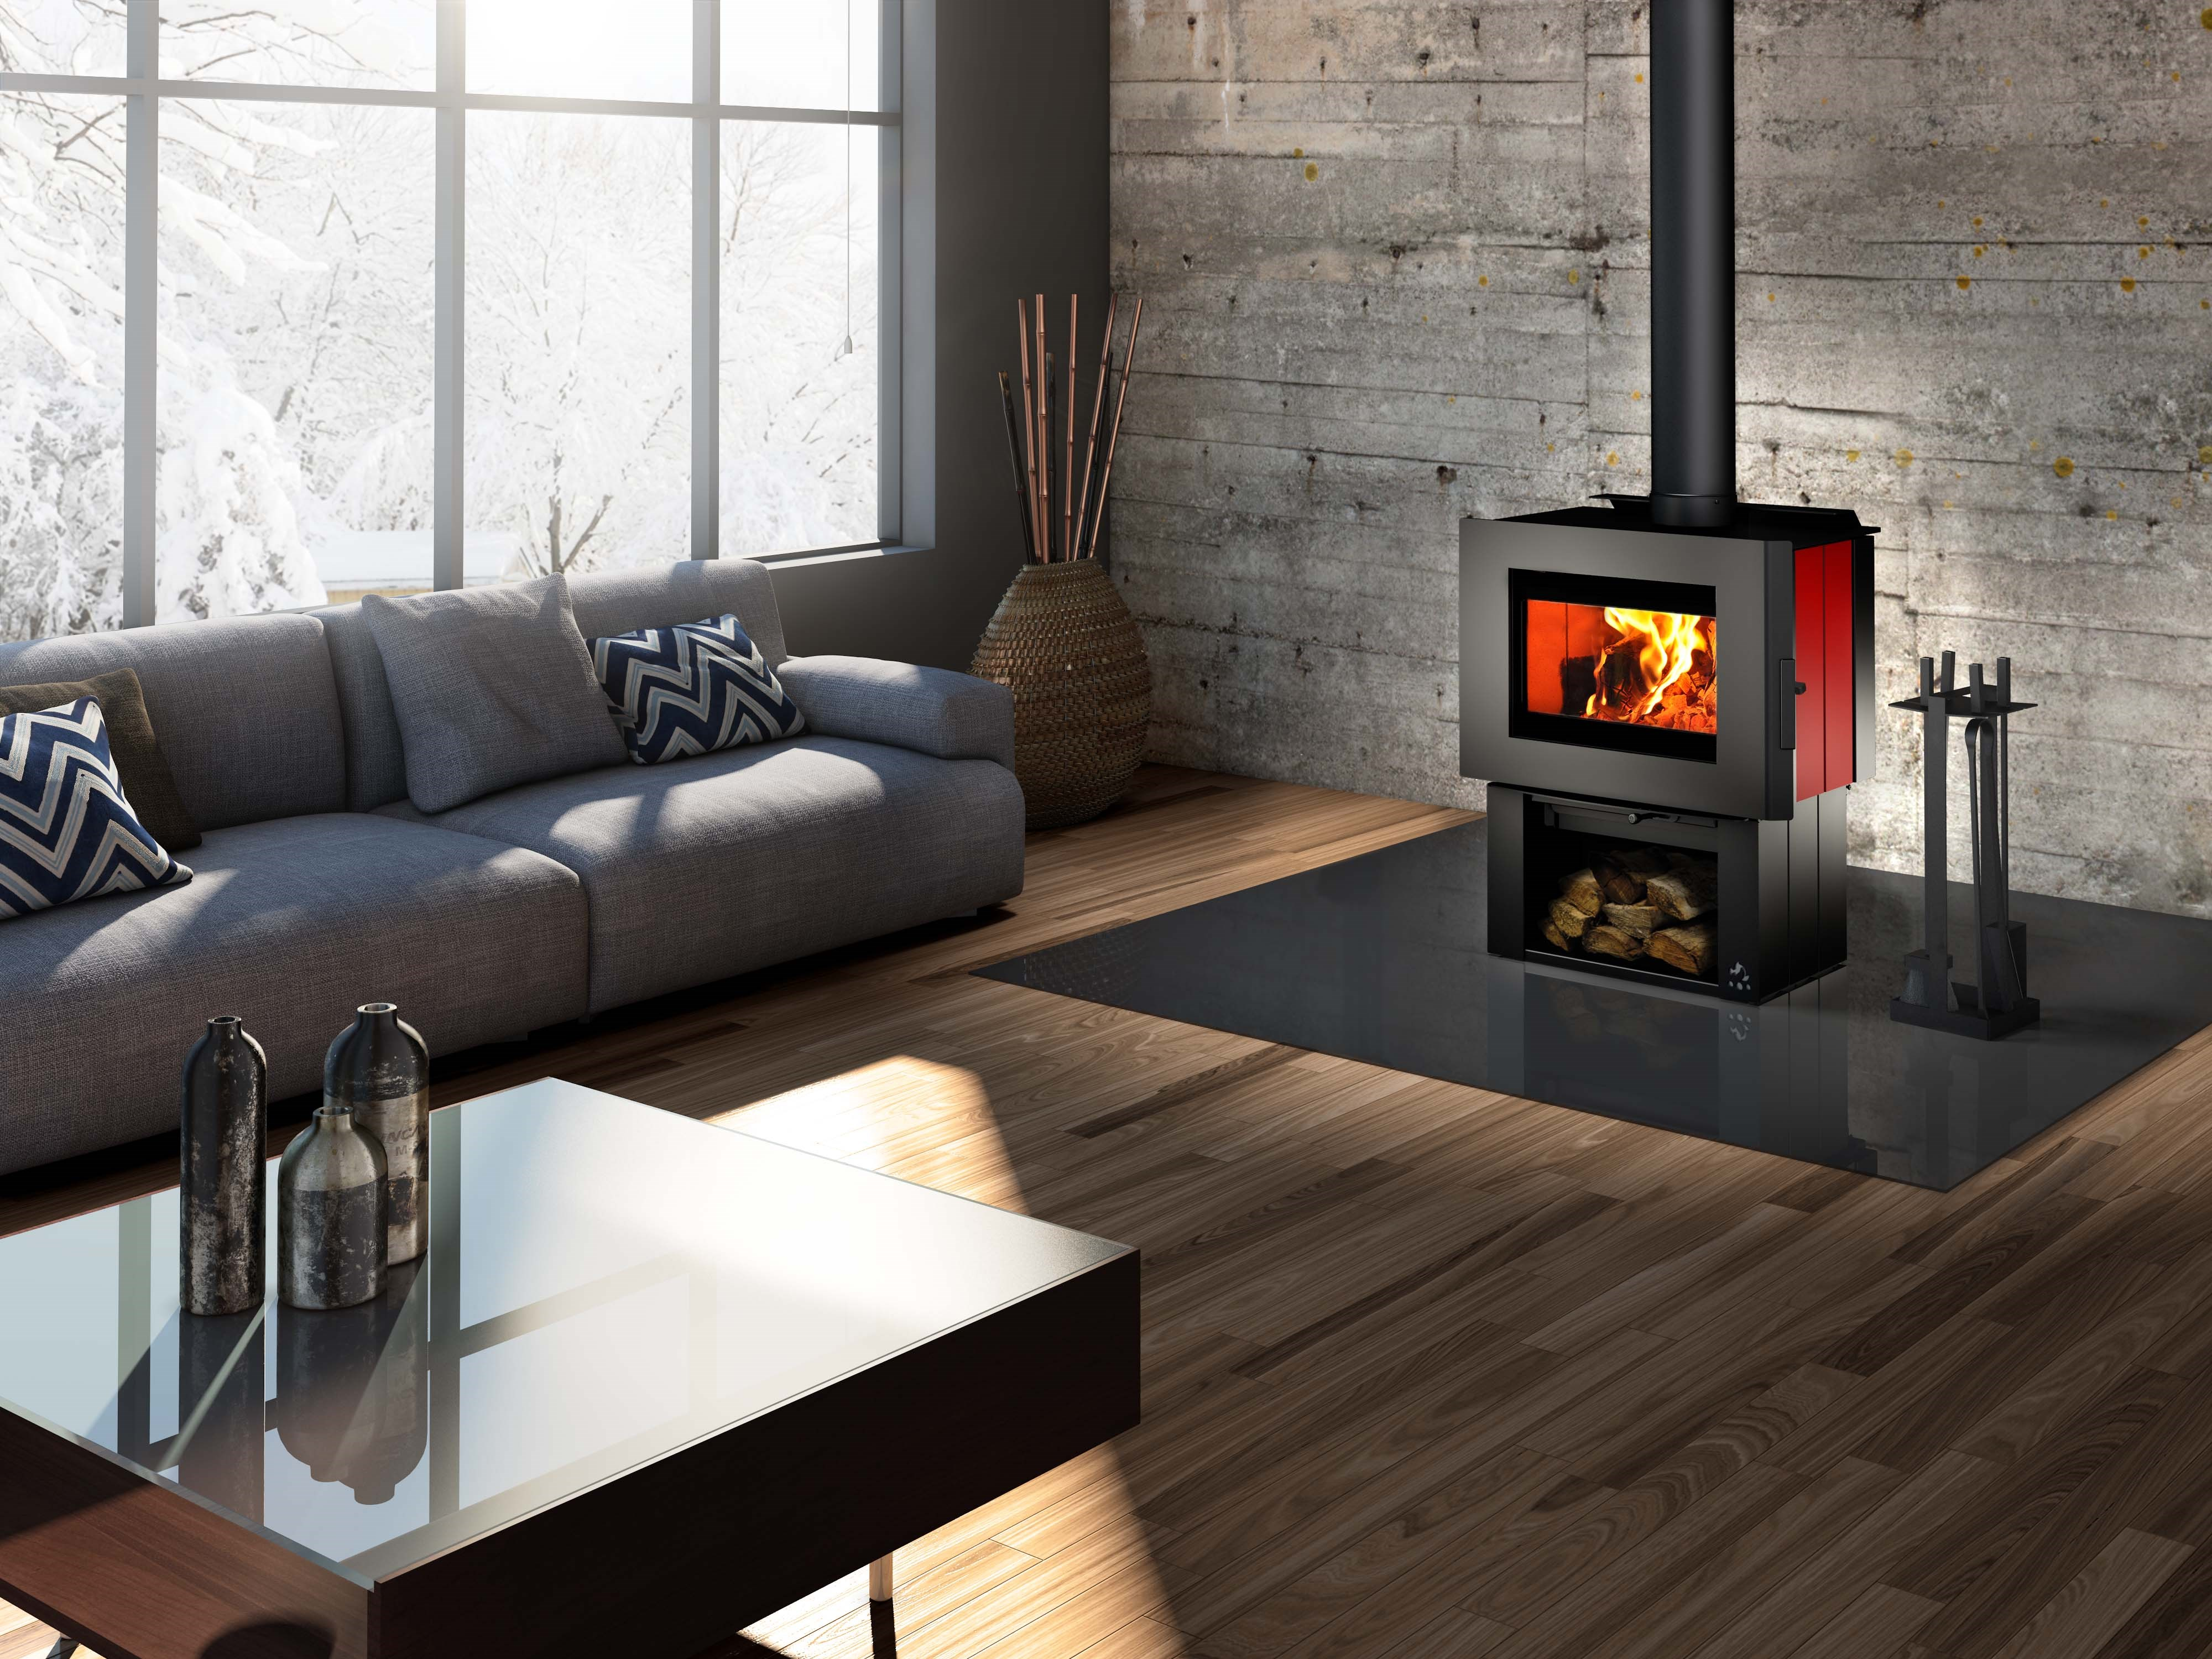 heat building freestanding wood products services heating glo stove cooling fireplace curve specifier